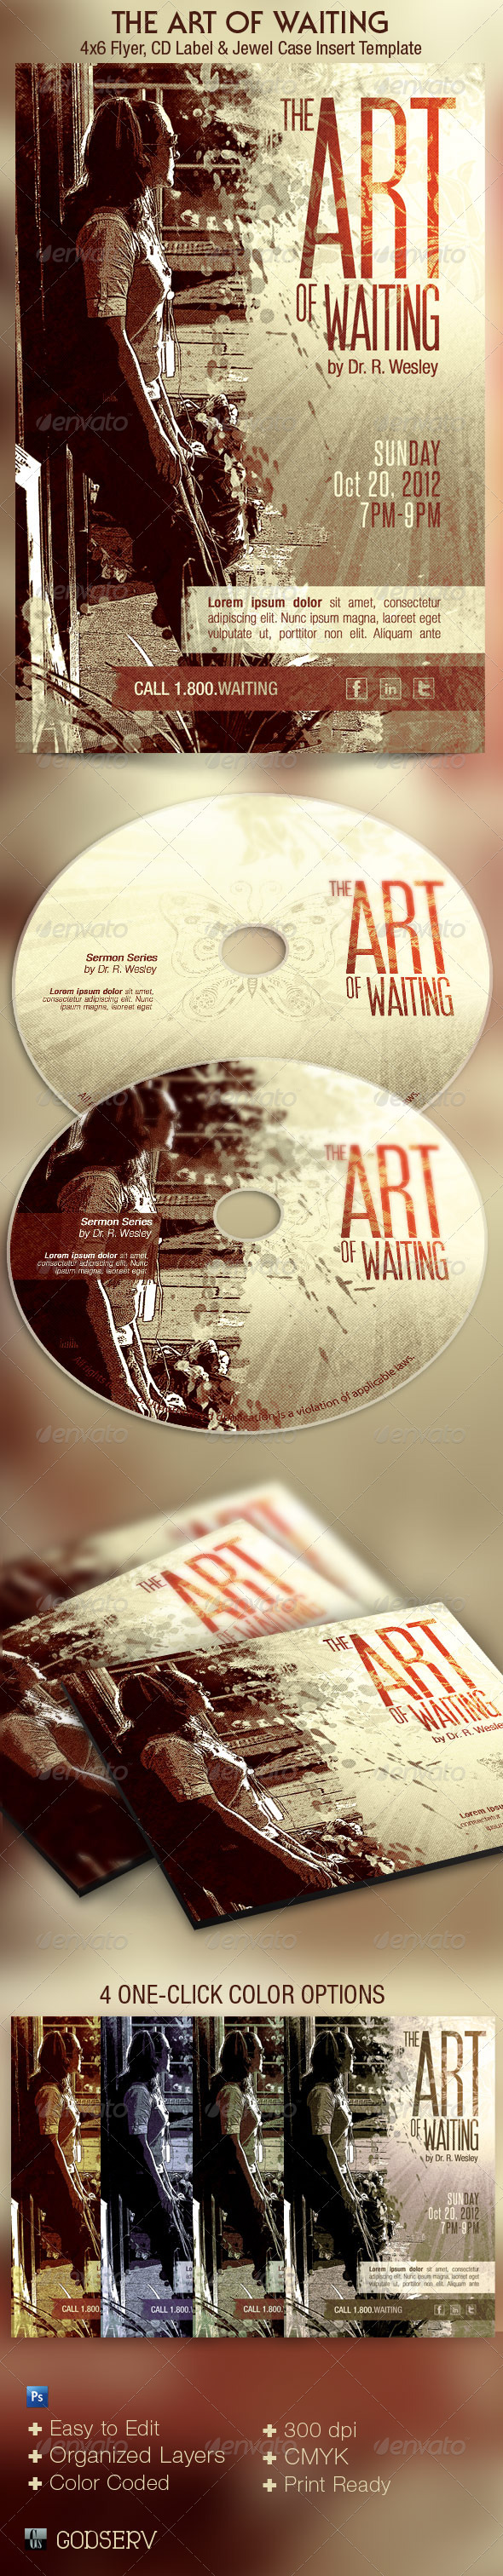 The Art of Waiting Retro Flyer and CD Template - Church Flyers